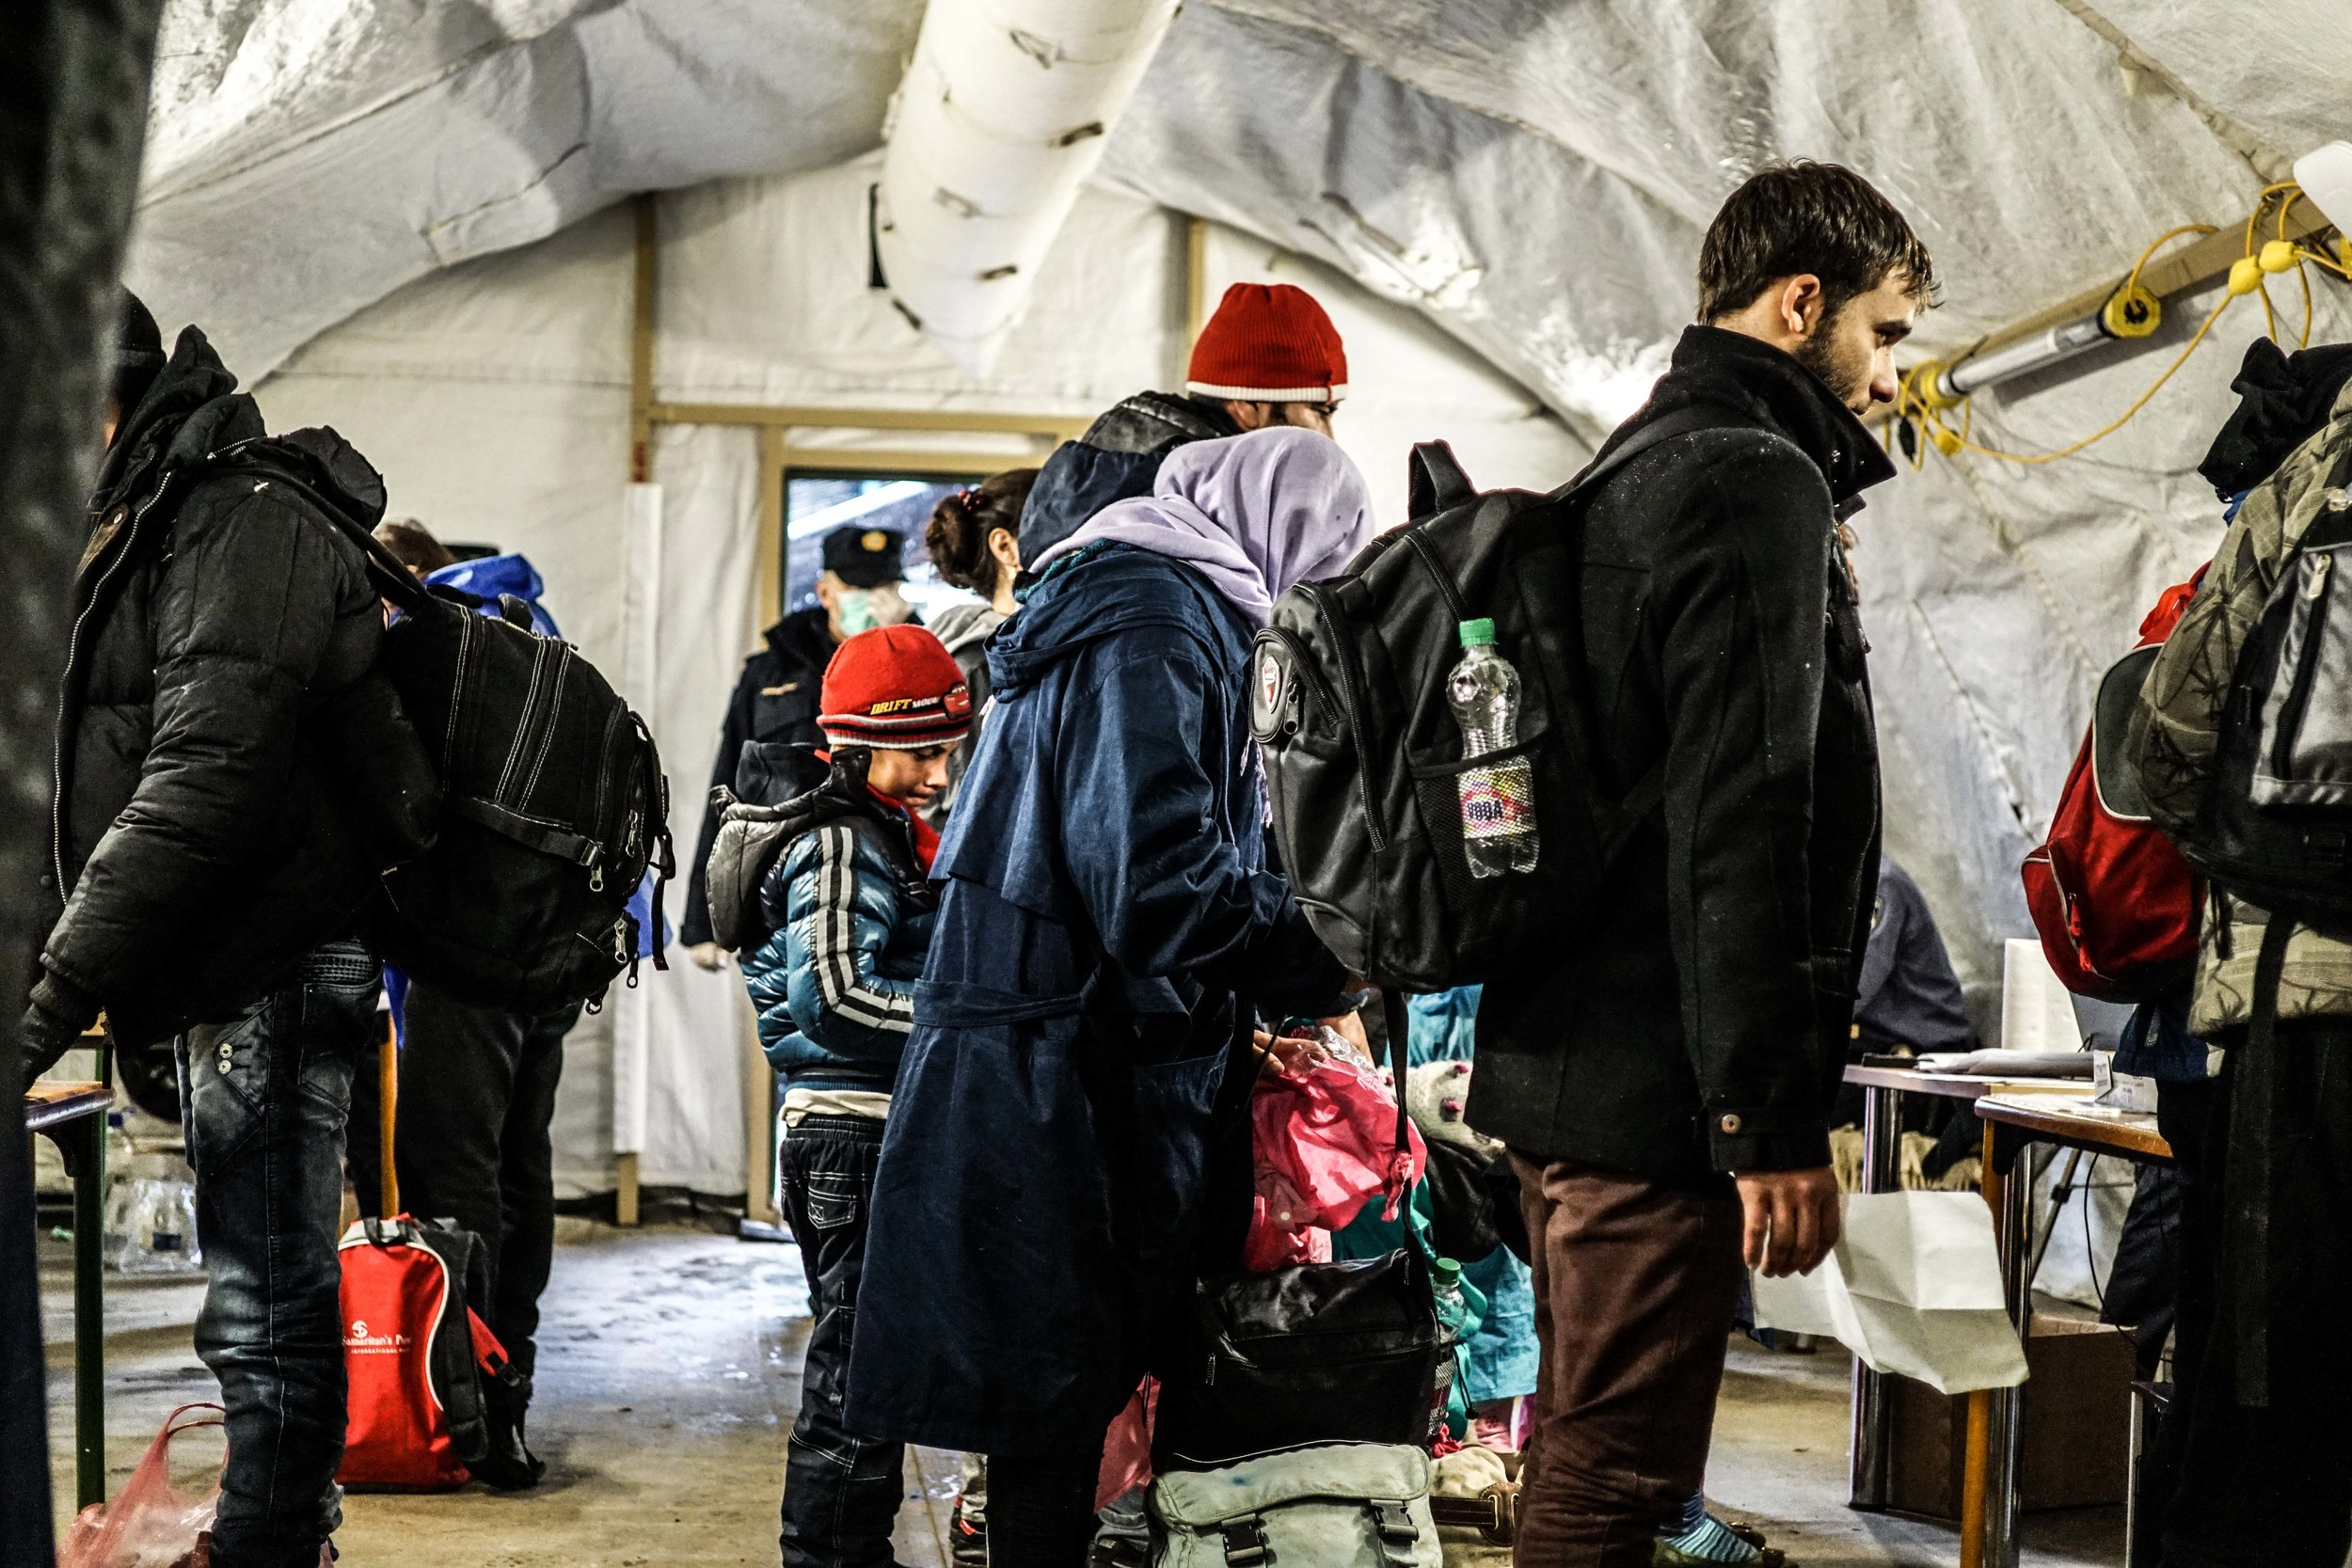 Syrian Refugee Crisis Croatia Slavonski Brod Winter Refugee Camp November 2015 23.jpg